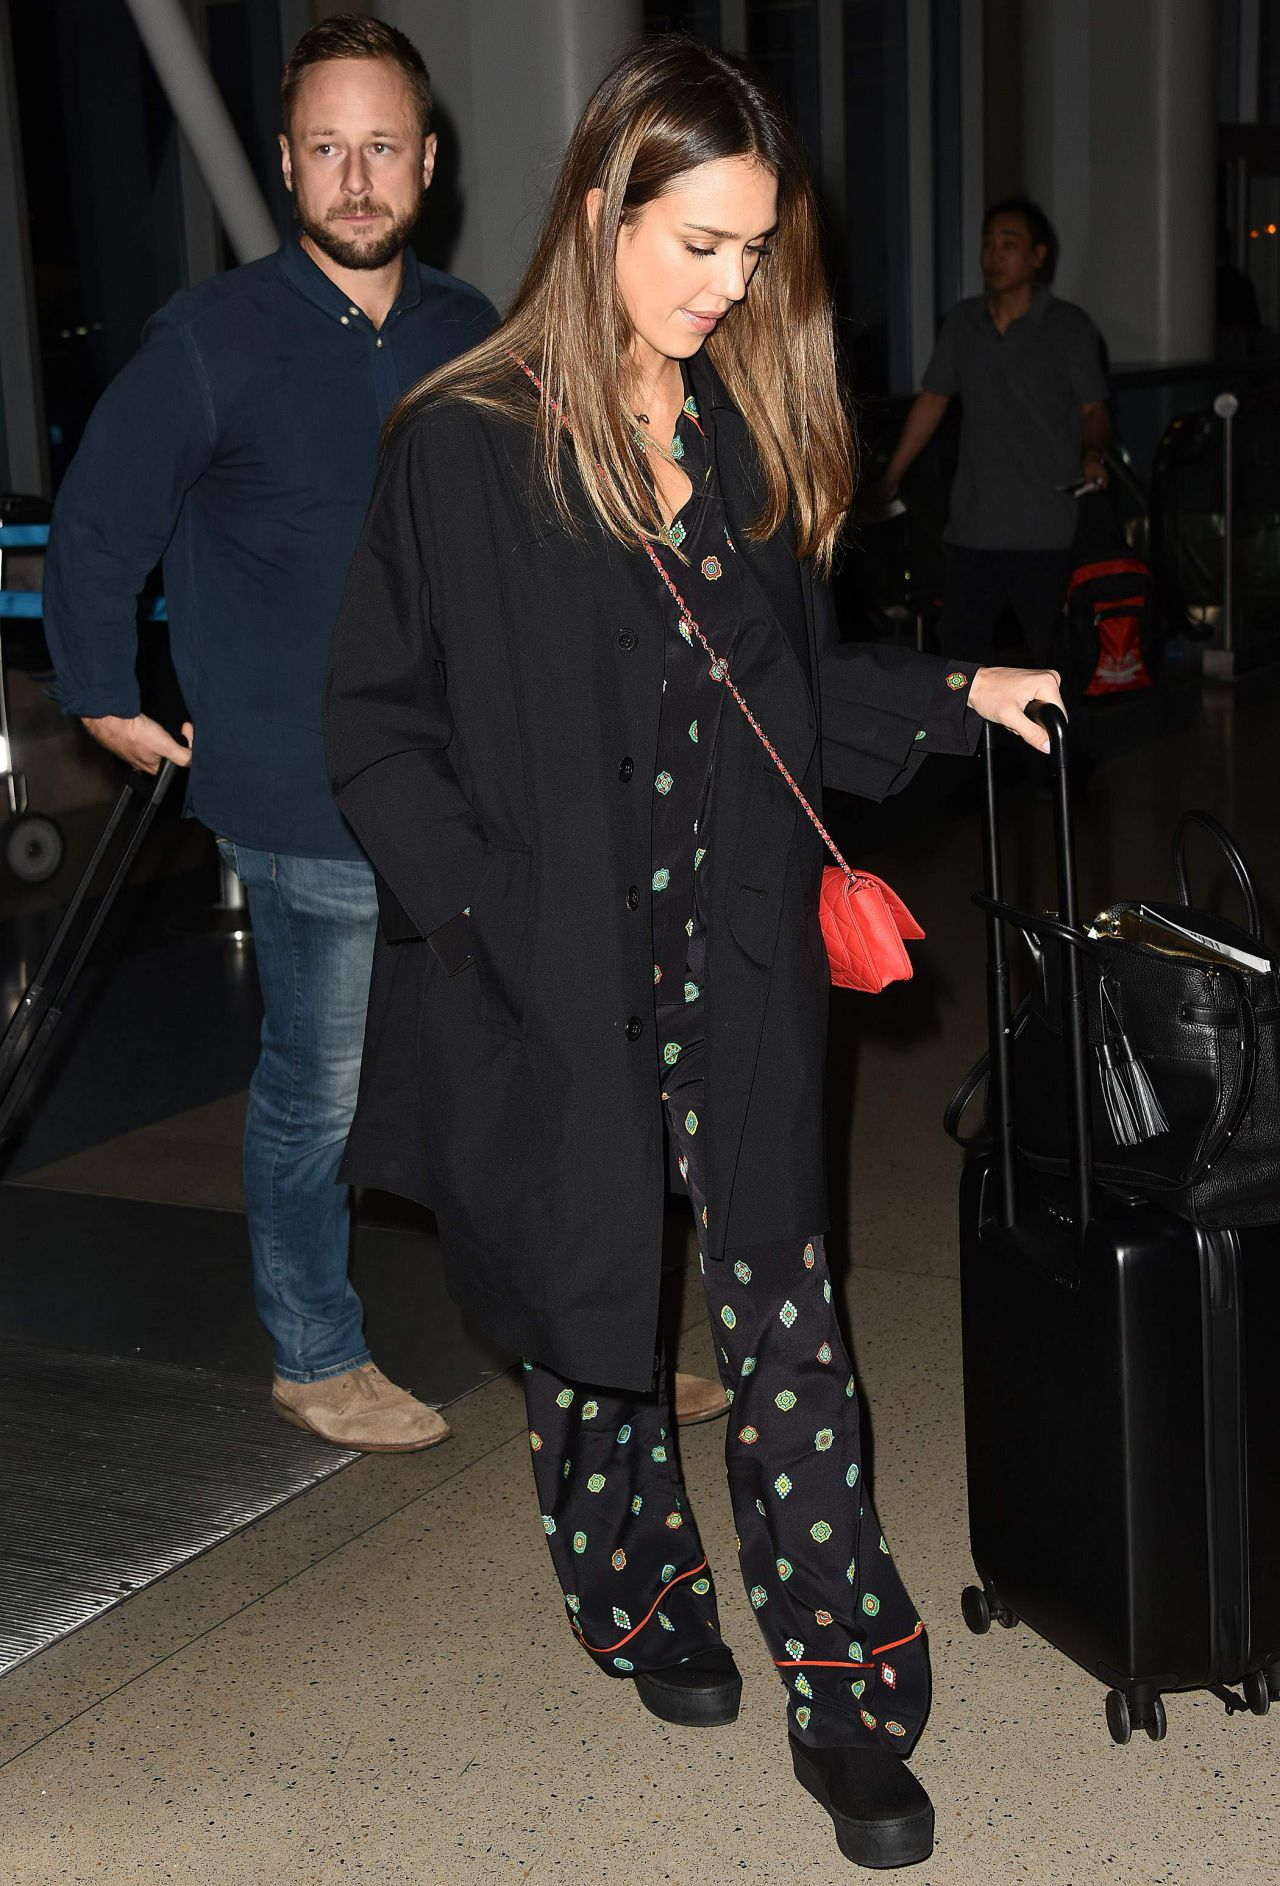 http://celebmafia.com/wp-content/uploads/2016/10/jessica-alba-at-lax-airport-in-los-angeles-10-18-2016-9.jpg